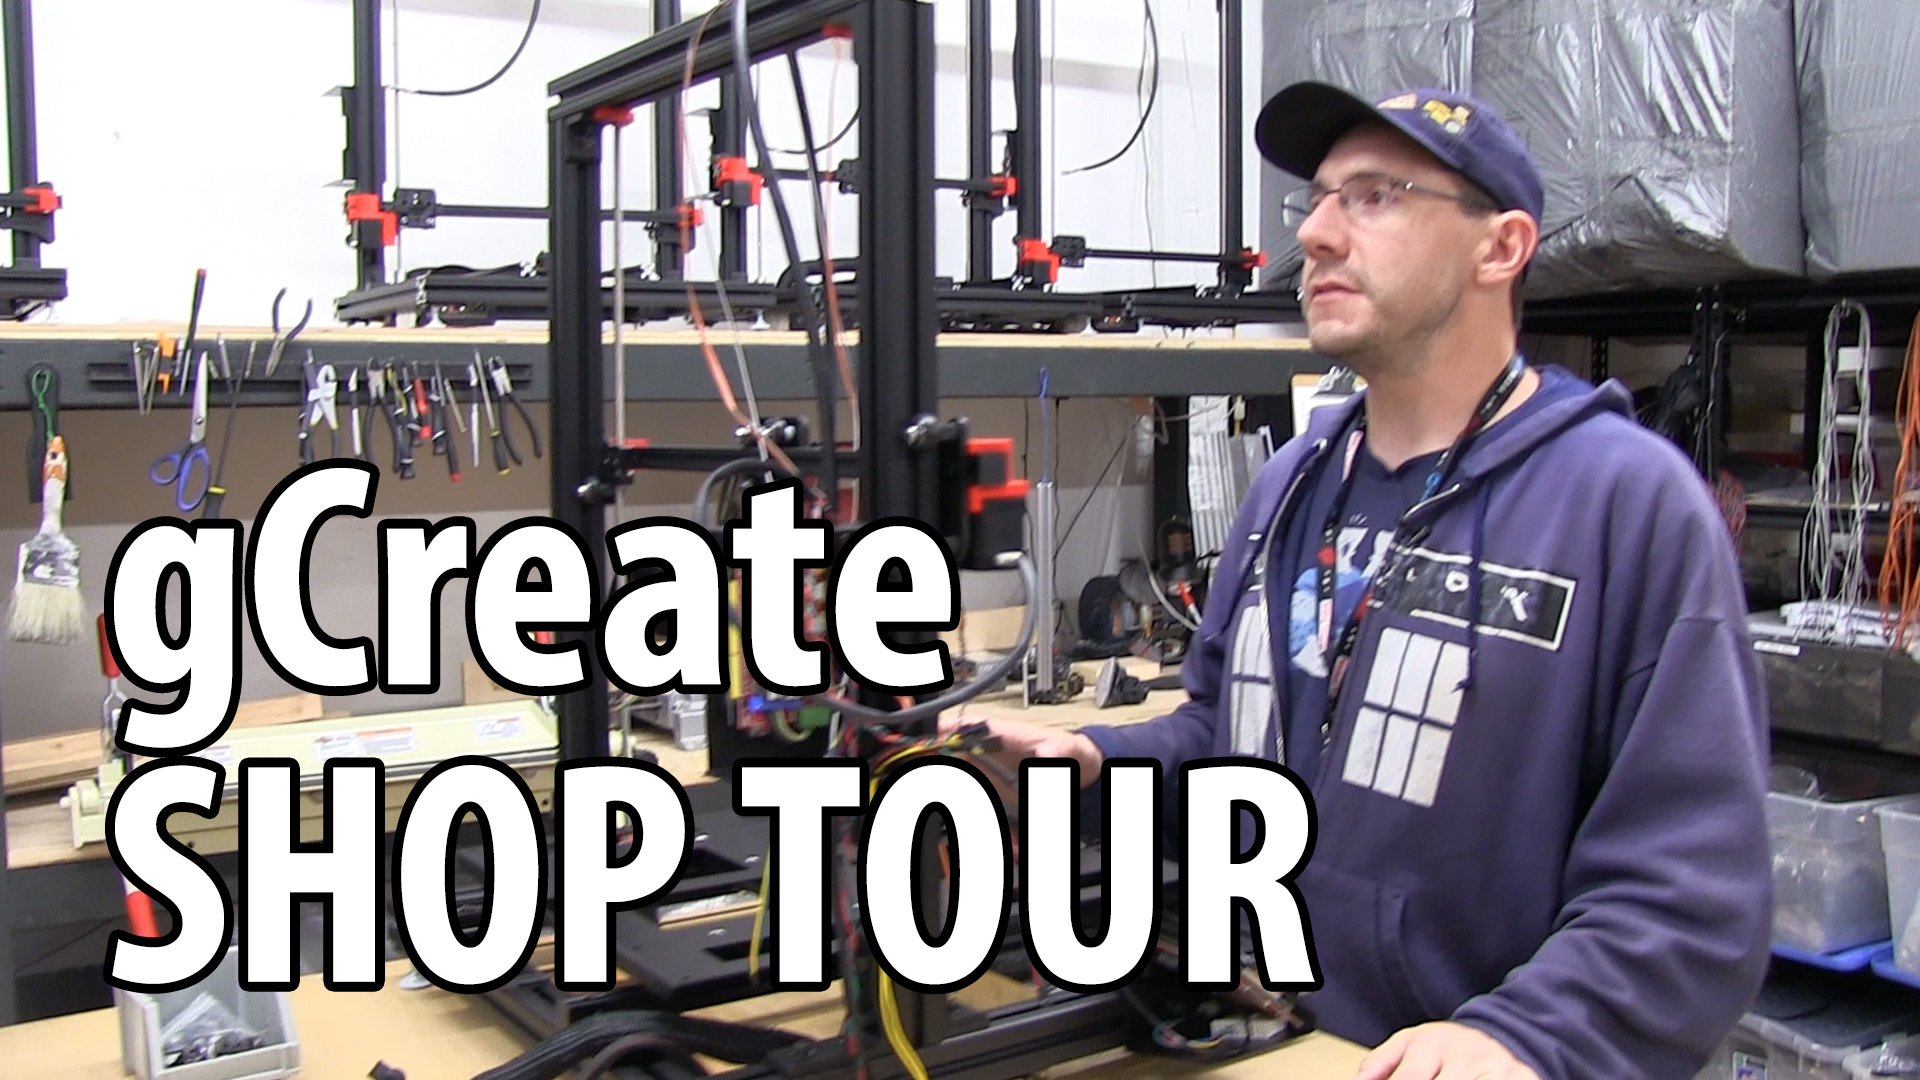 gCreate Shop Tour during World Maker Faire in New York #WMF16